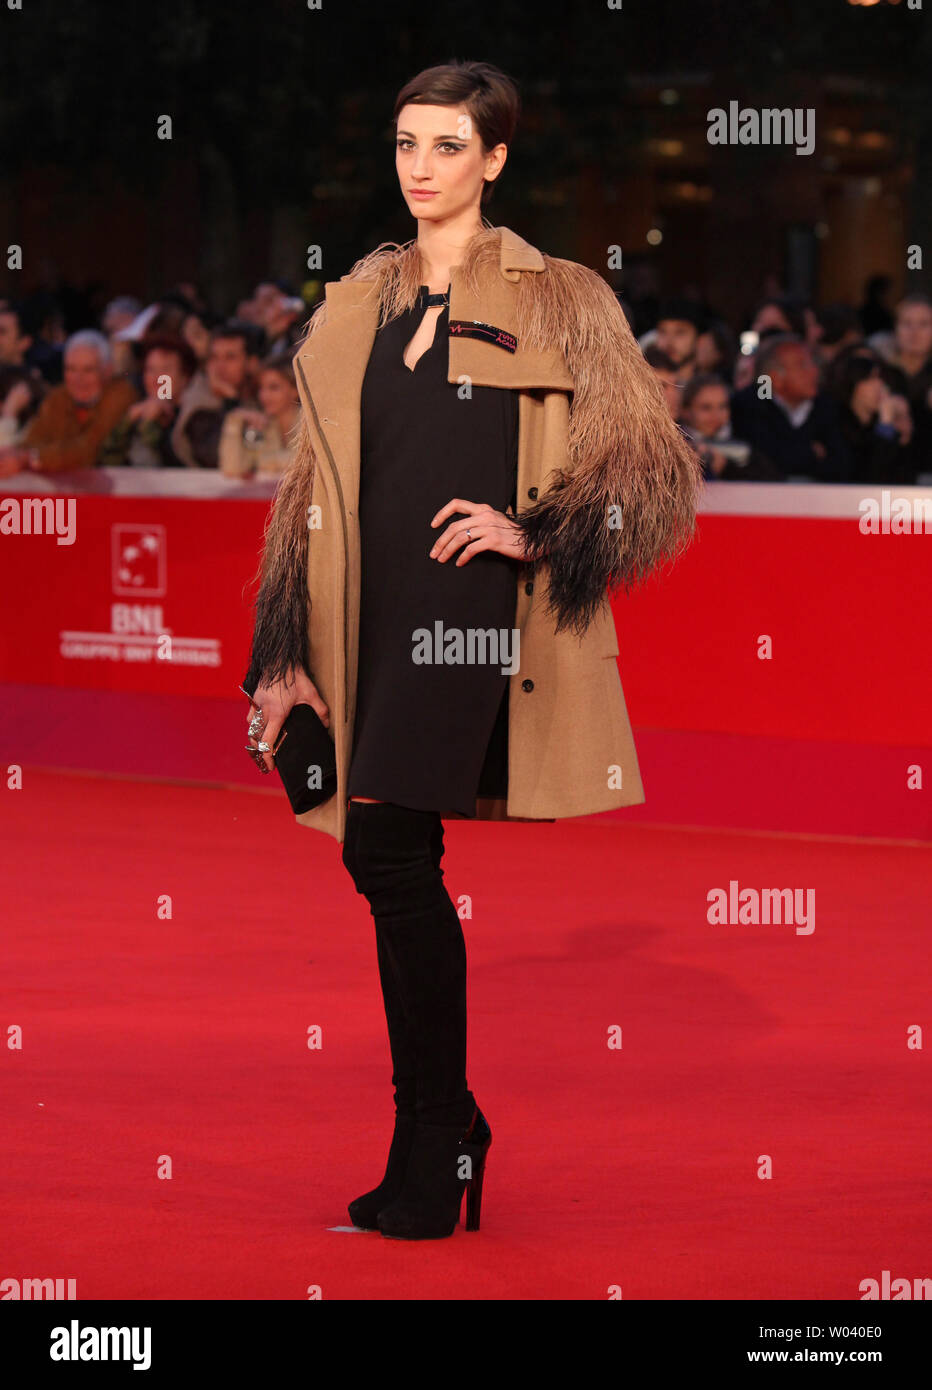 Francesca Inaudi arrives on the red carpet before the screening of a digitally restored version of the 1960 classic film 'La Dolce Vita' during the 5th Rome International Film Festival in Rome on October 30, 2010.   UPI/David Silpa - Stock Image